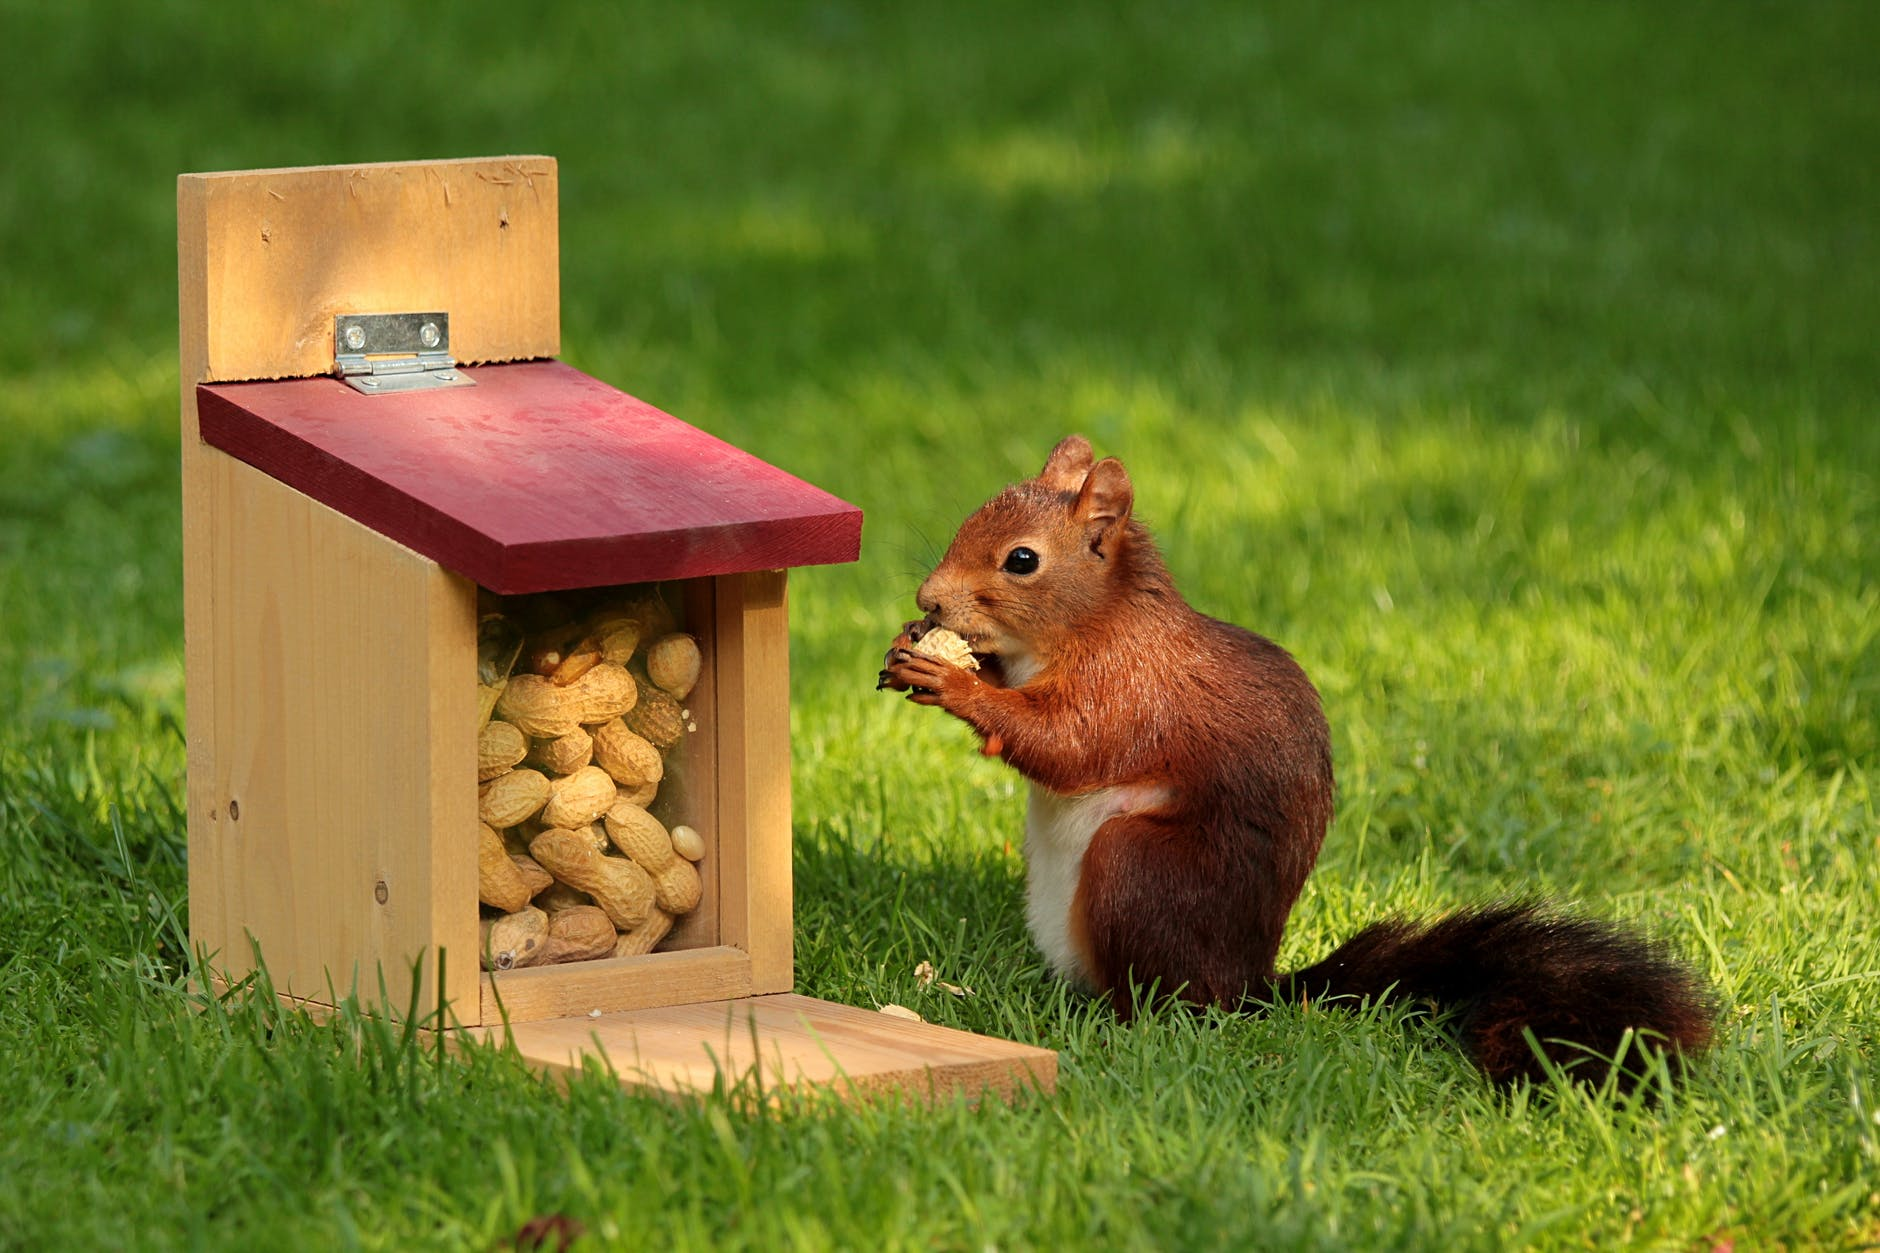 Against a background of grass, a squirrel eats a peanut while sitting next to a squirrel feeder full of peanuts.